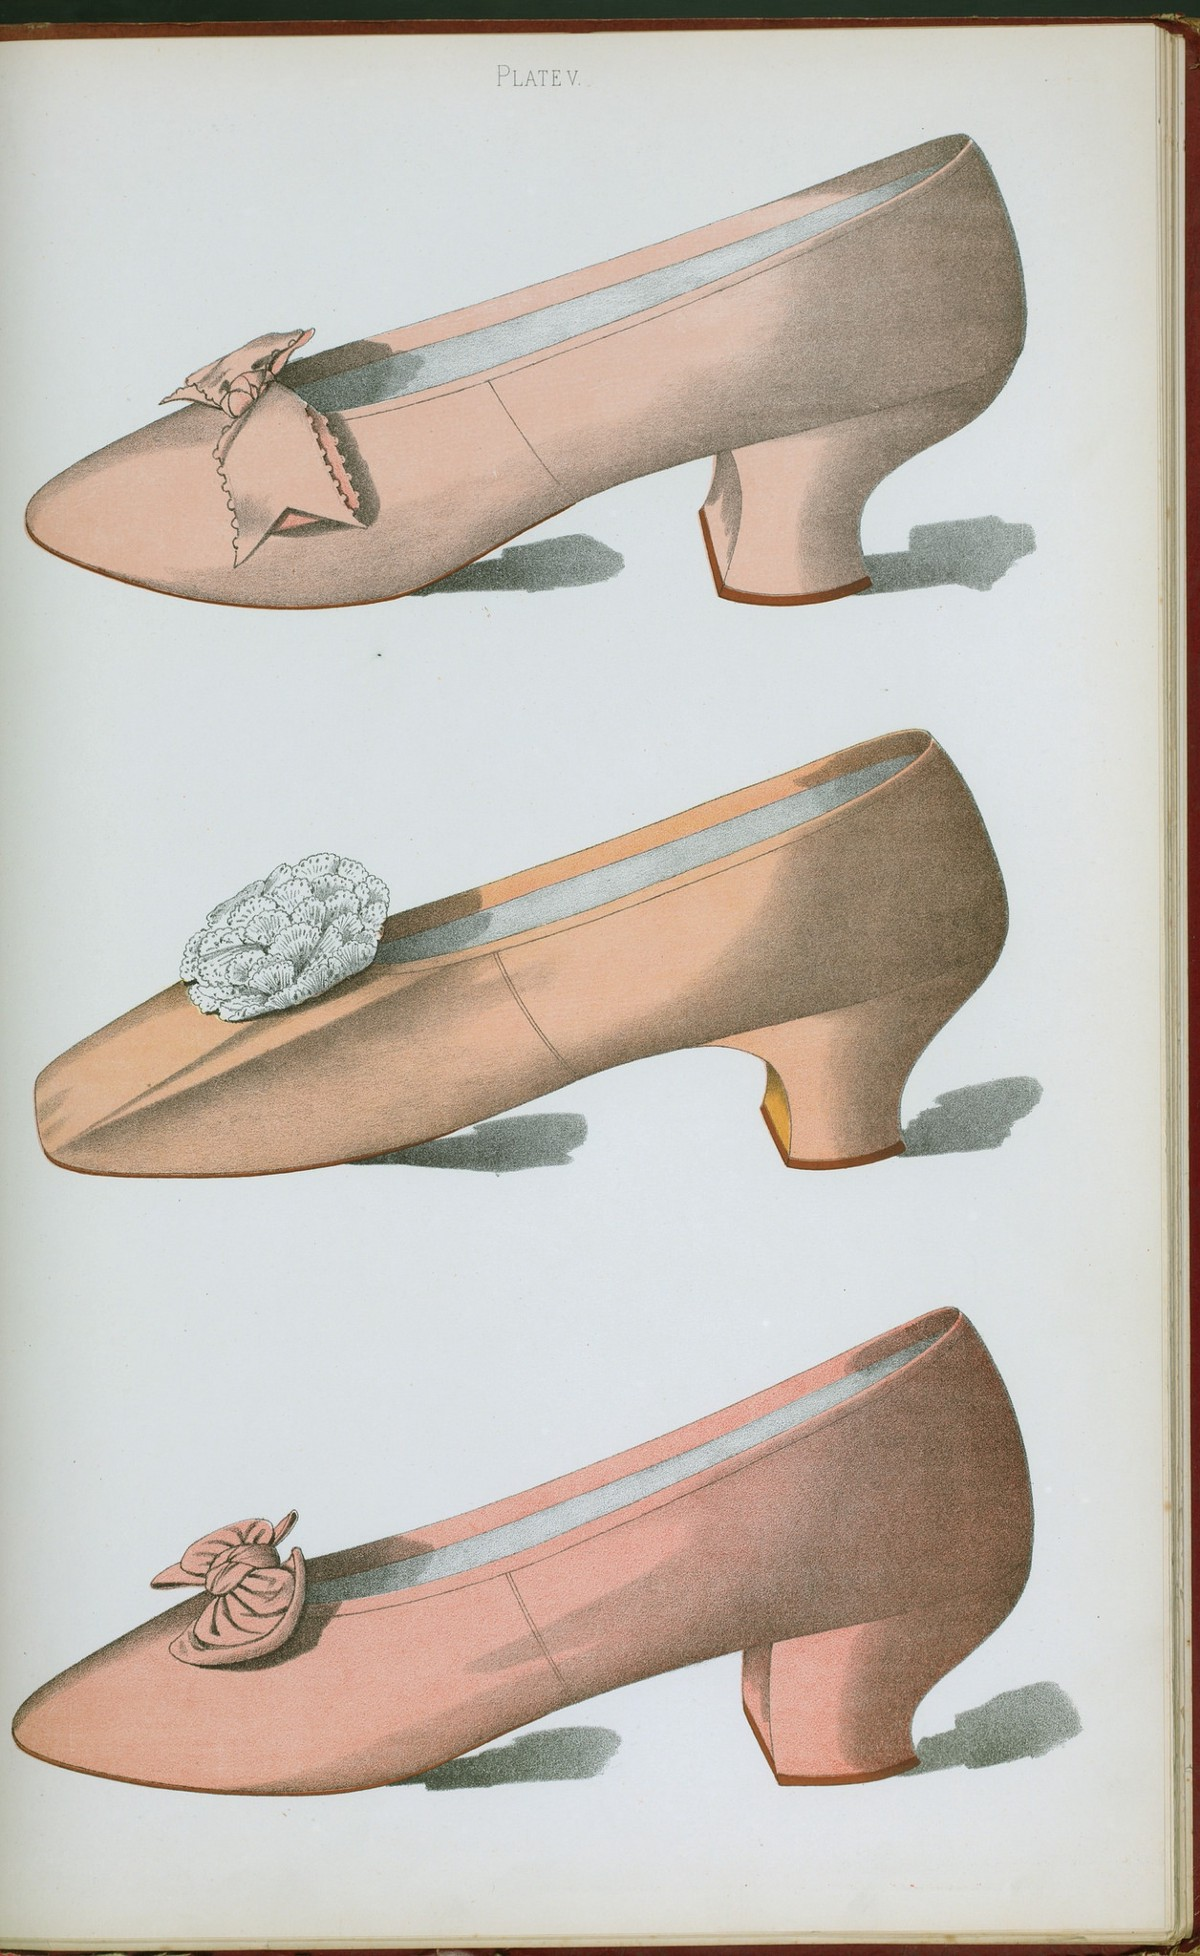 vintage high heel illustration from NYPL